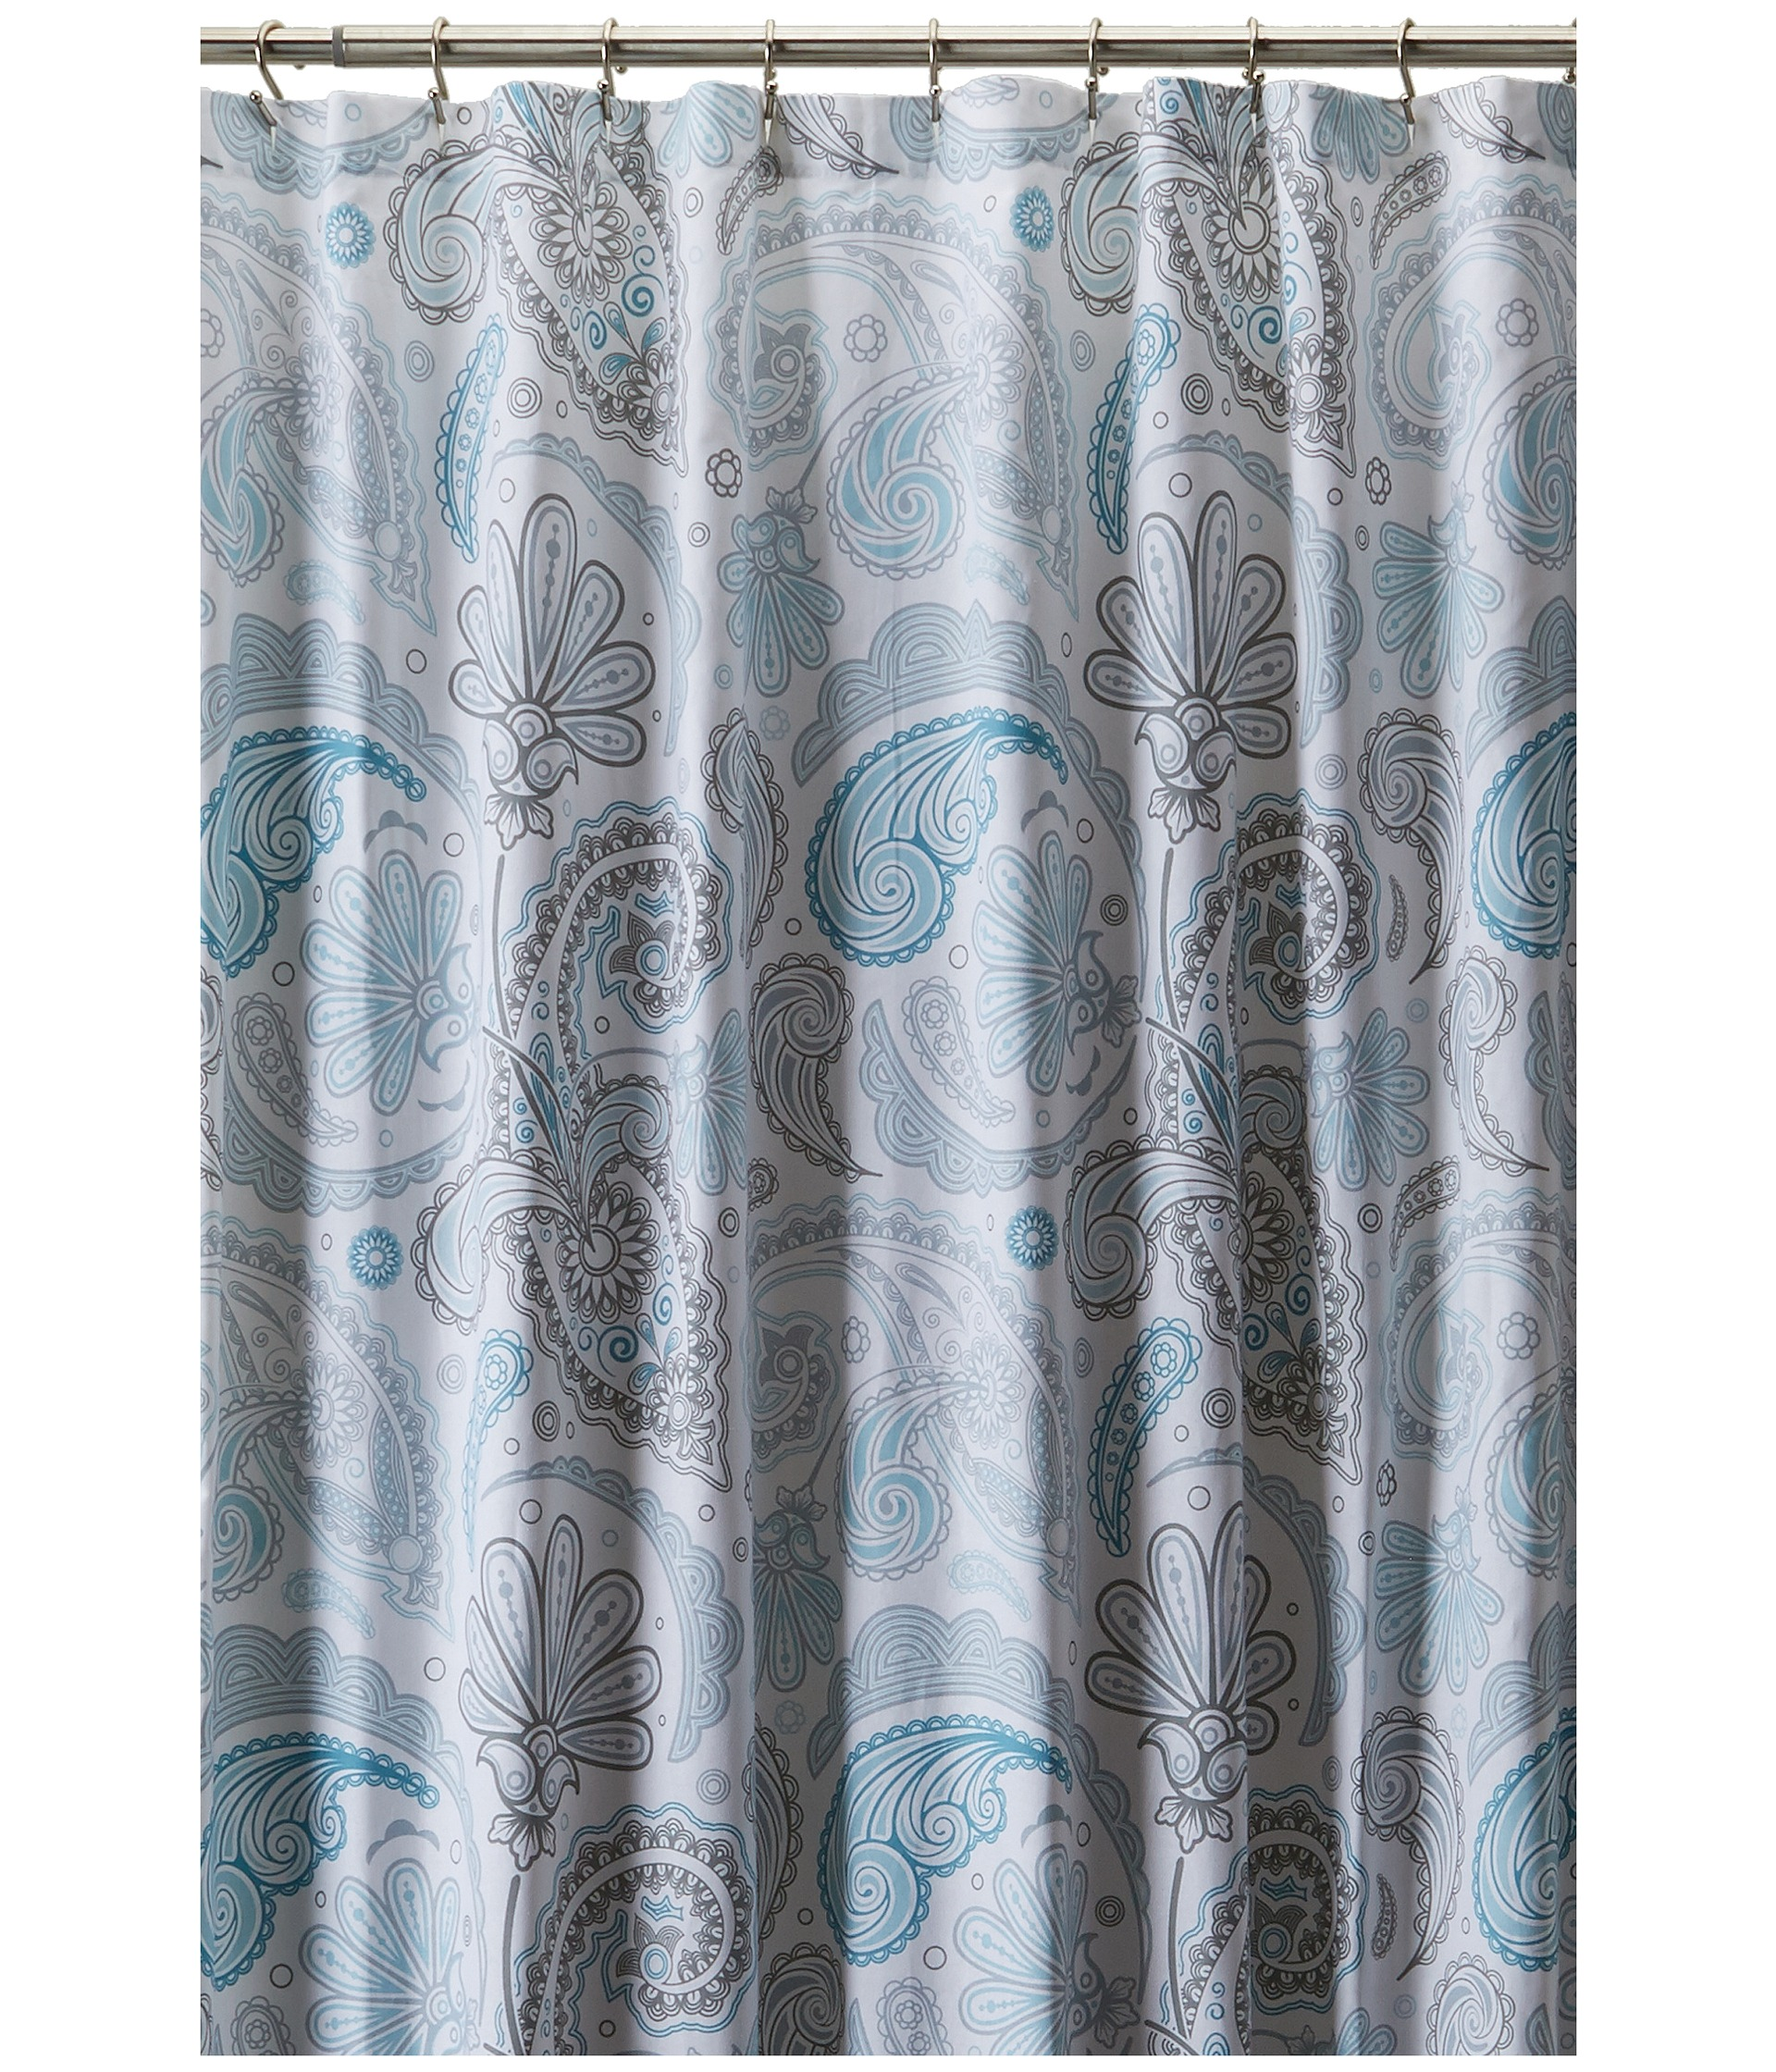 Kassatex Paisley Shower Curtain Blue Grey Women Shipped